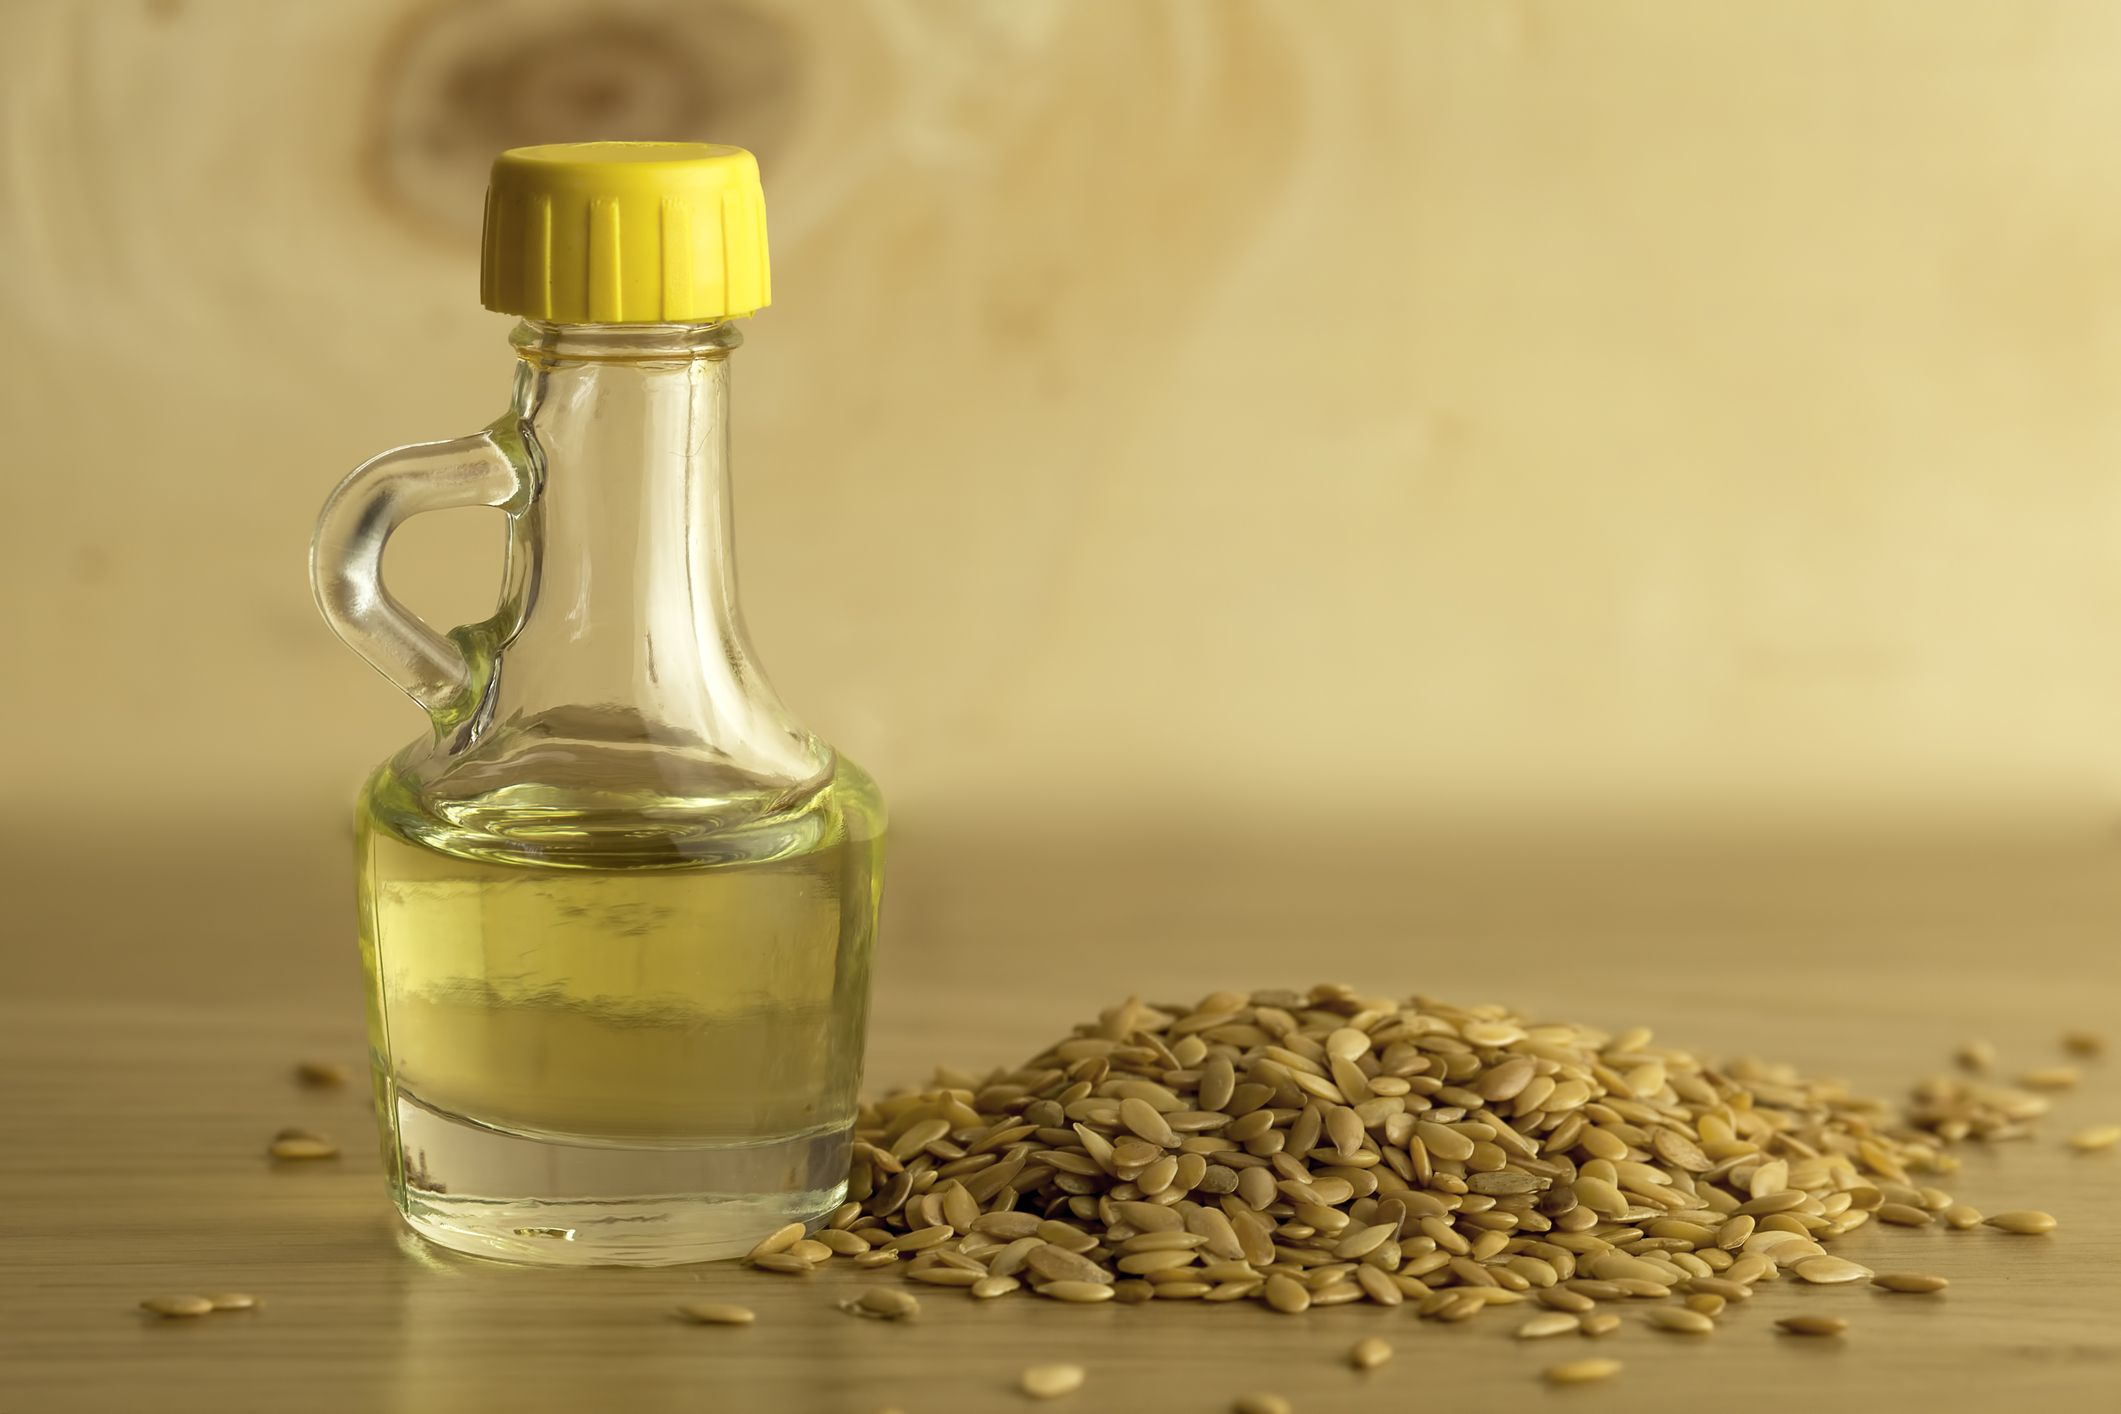 Flammable Household Products - Linseed Oil Causes Dangerous